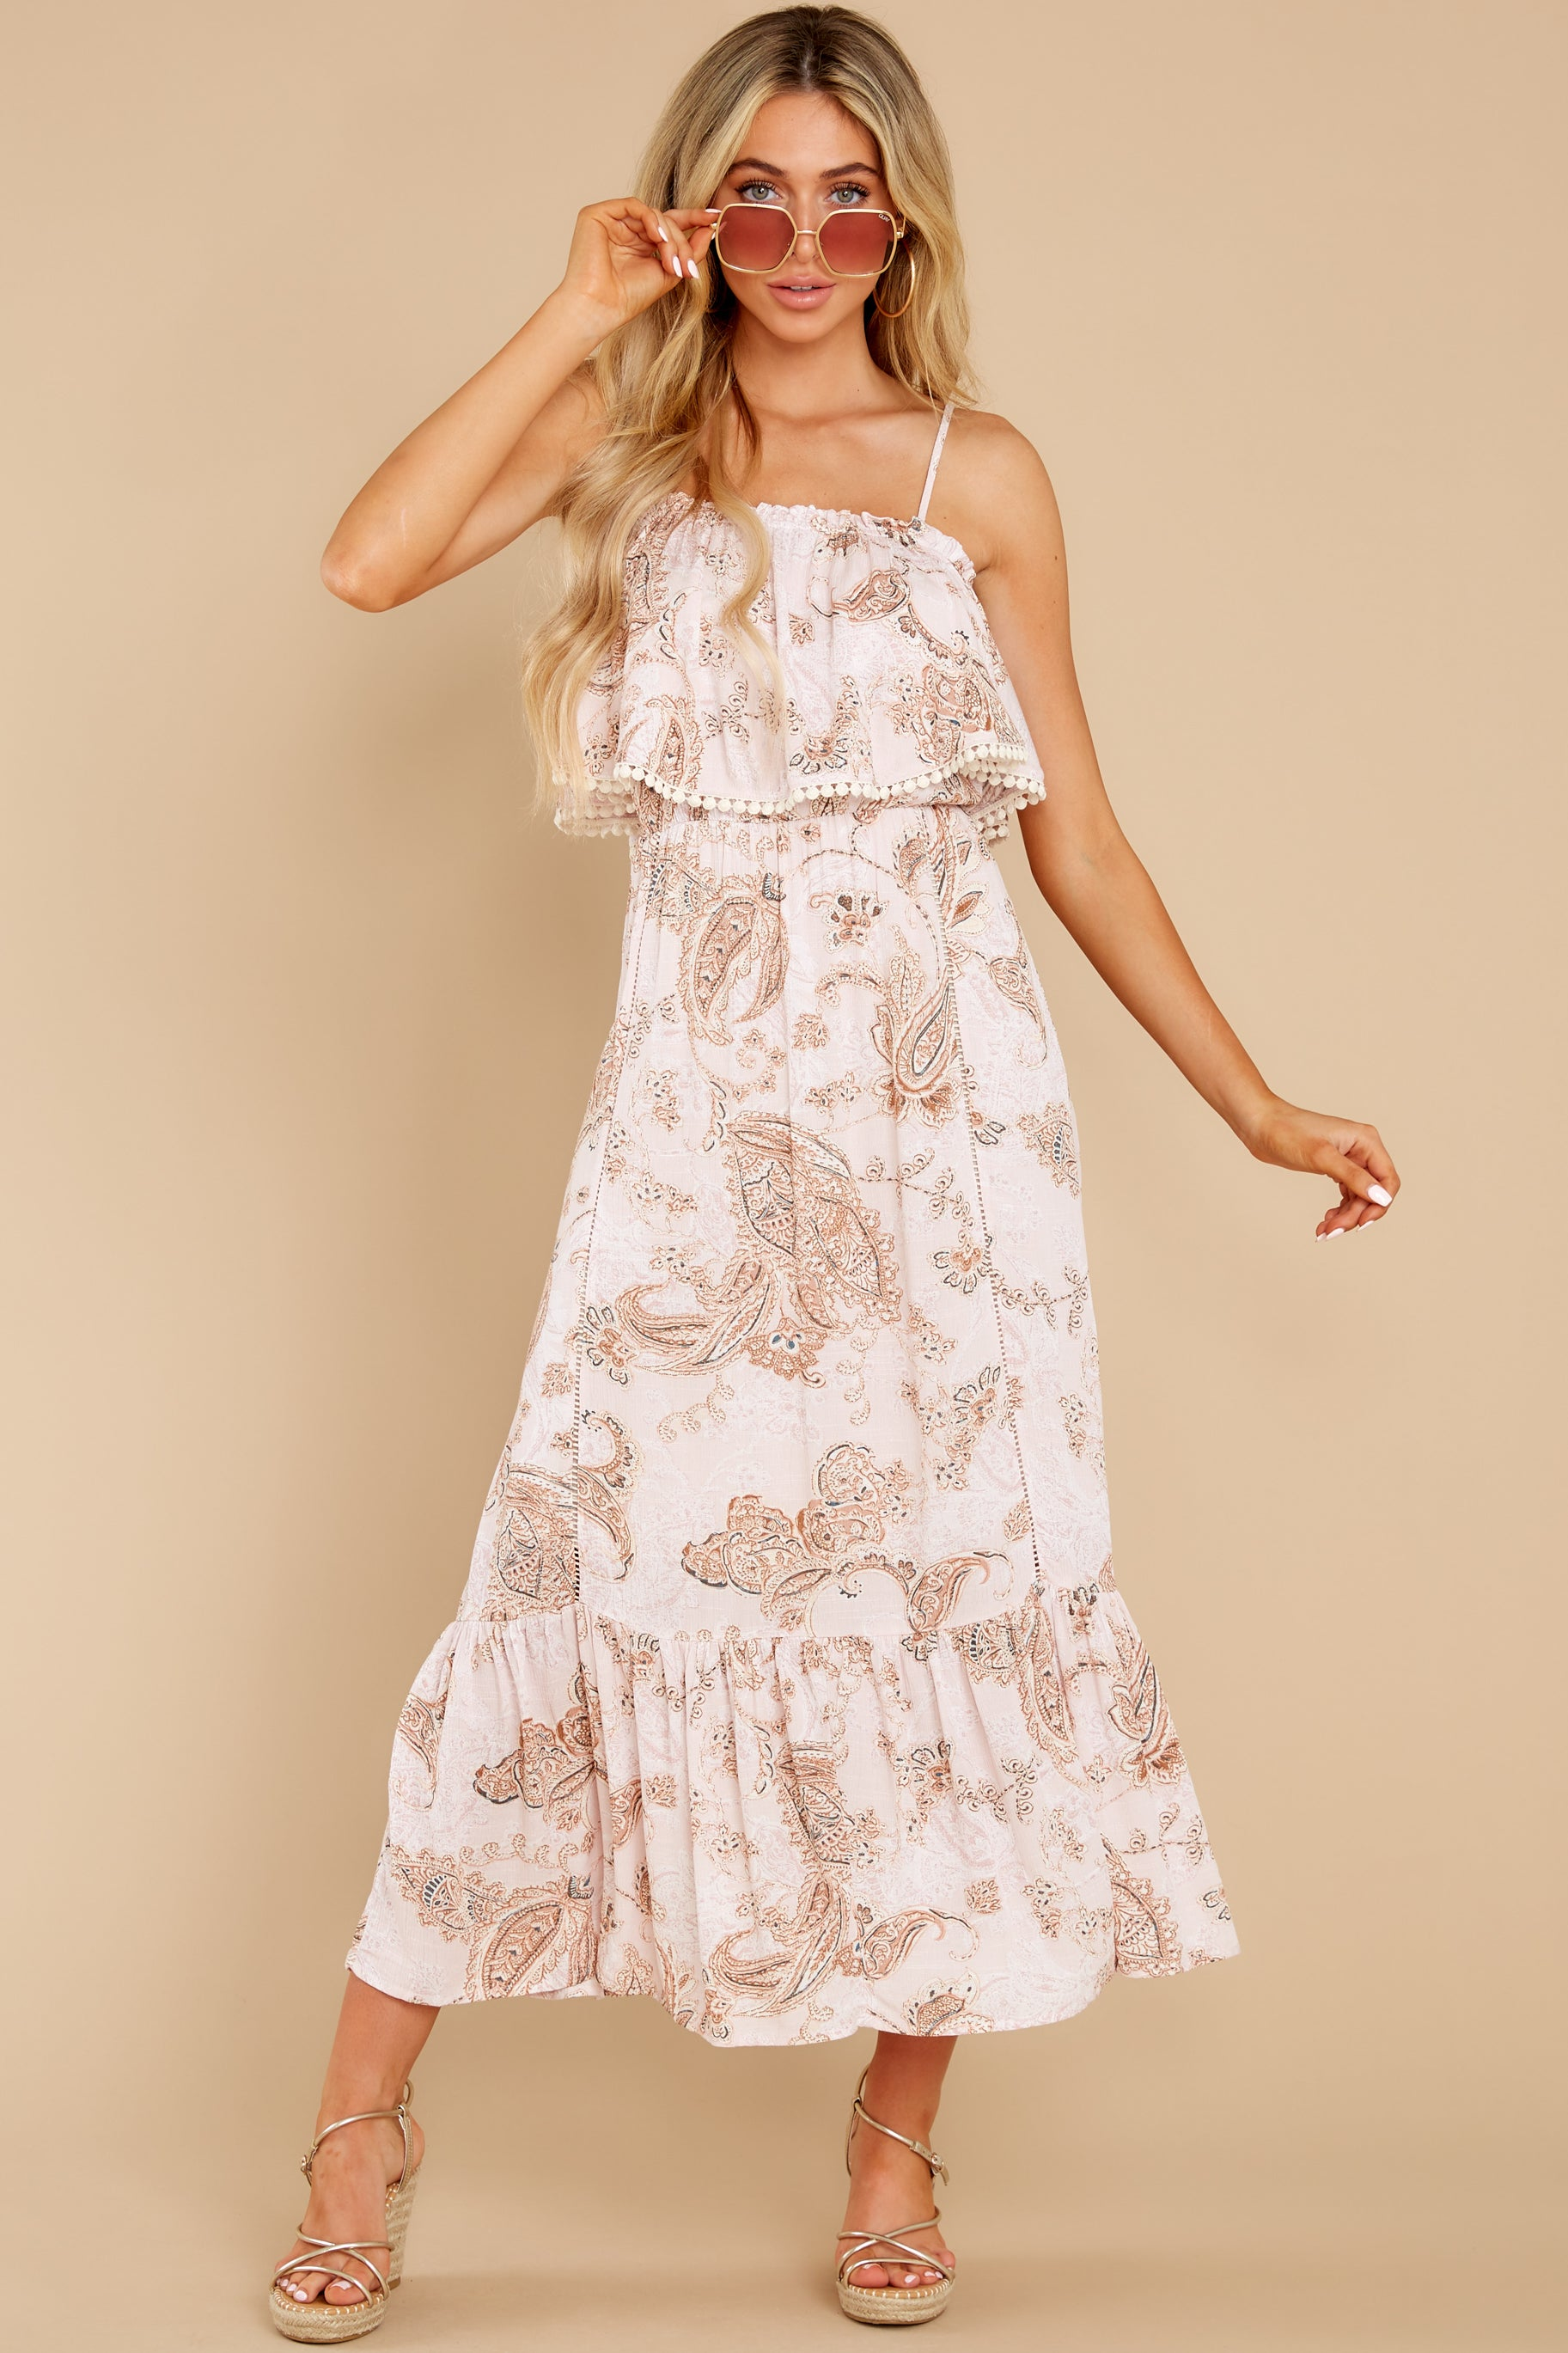 4 Tableside Cutie Dusty Pink Floral Print Maxi Dress at reddress.com